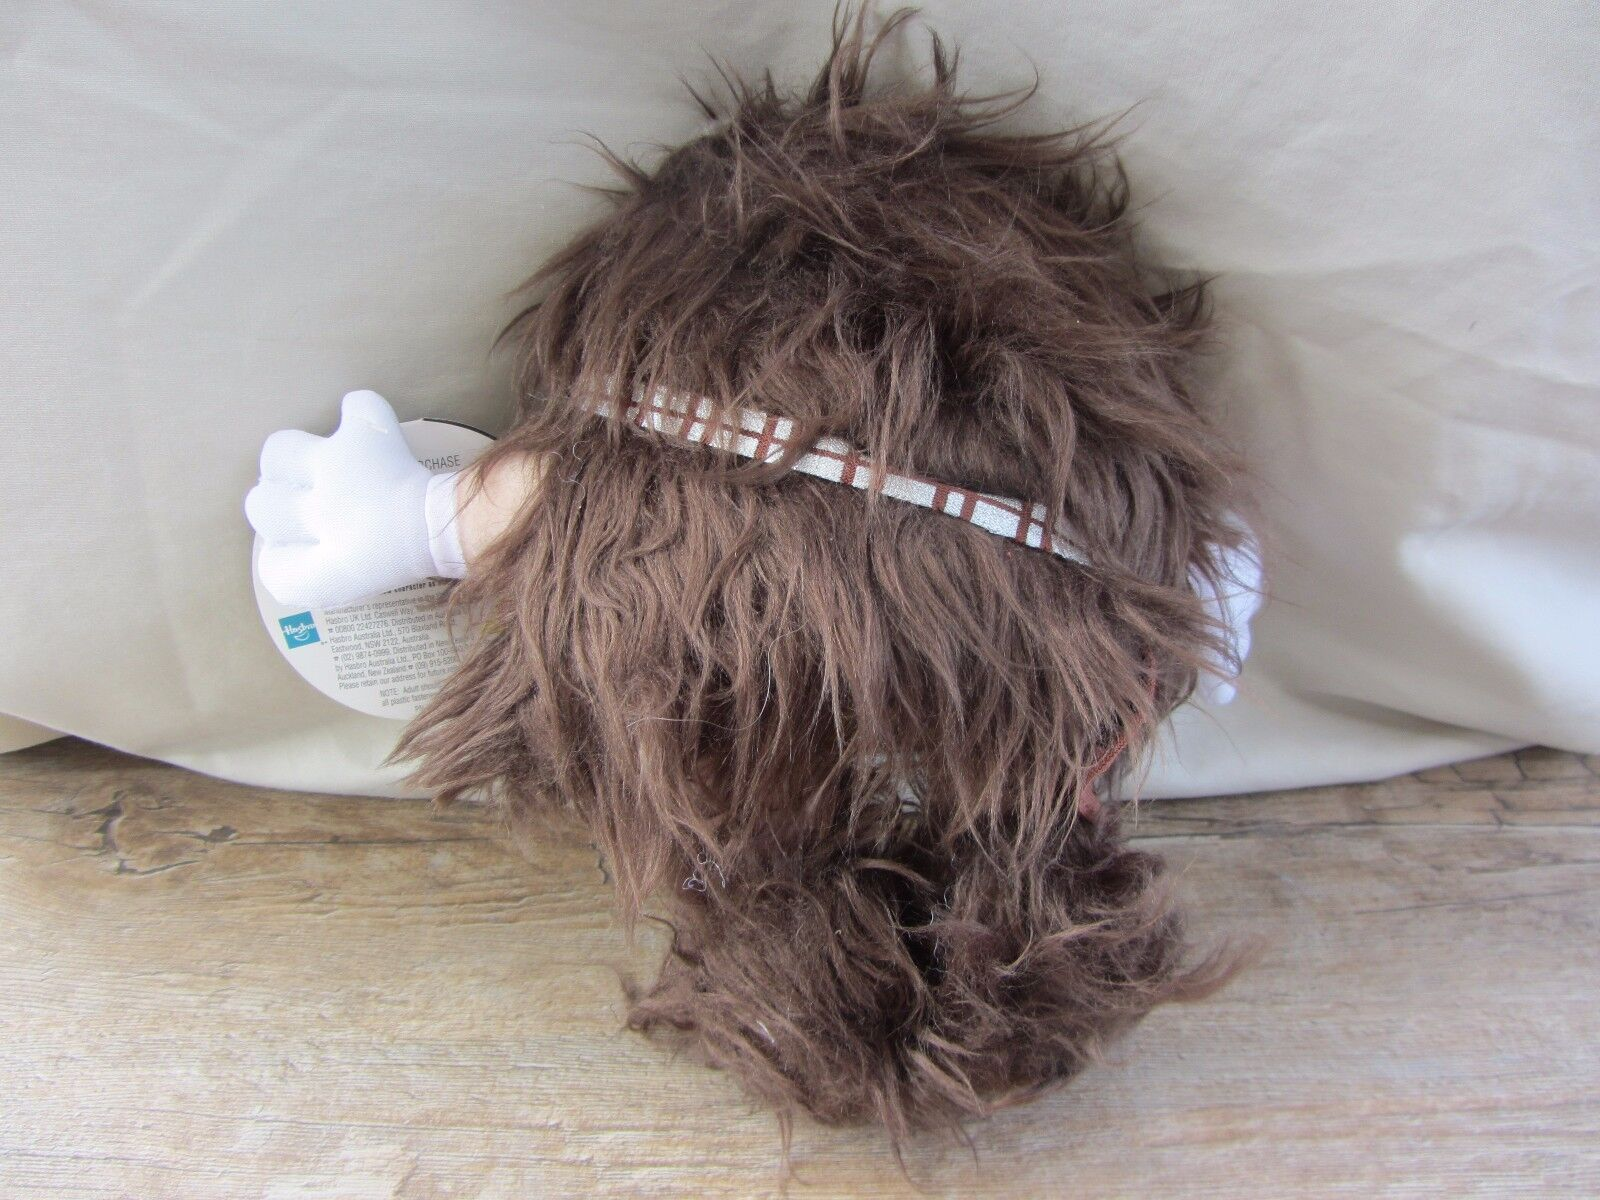 Star Wars Chocolate Mpire - Chewbacca -Tag by Hasbo -Tag Chewbacca Attached (916DJ51) 85786 d3e51b